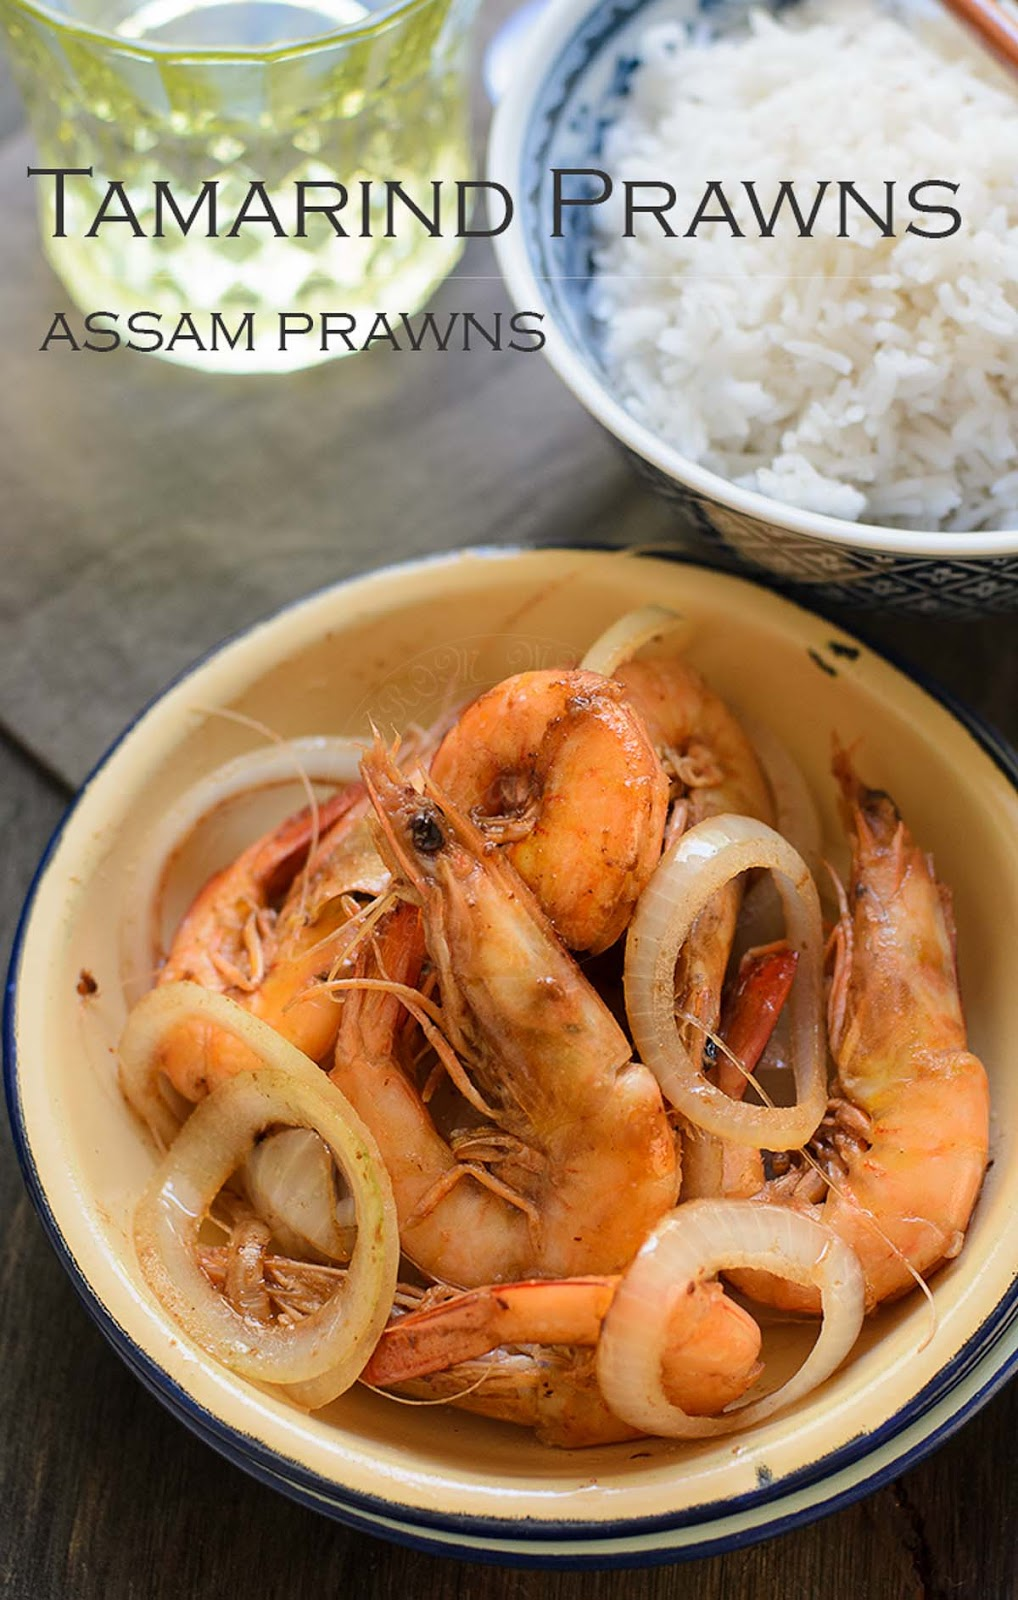 Plump, succulent and juicy prawns coated with delicious sweet, sour and slightly salty sauce.